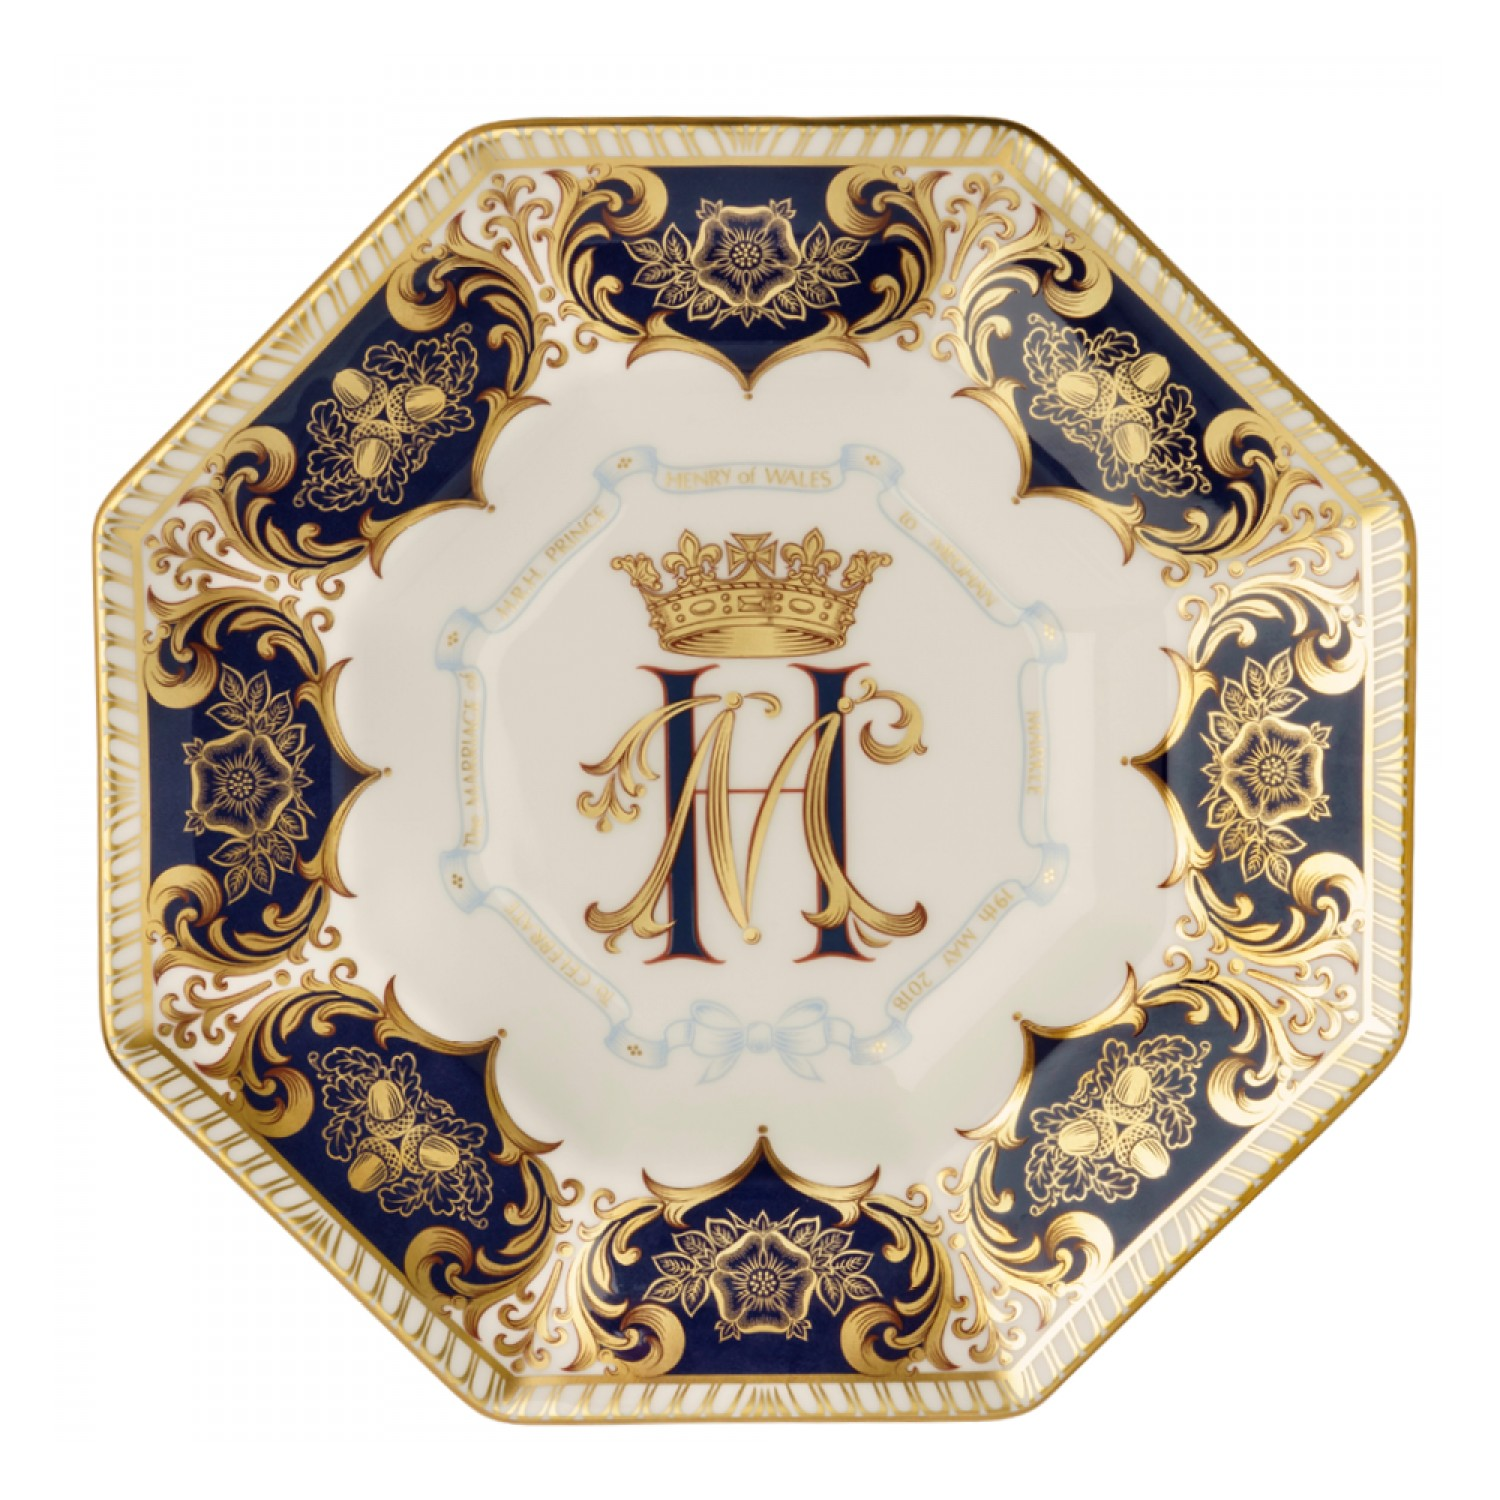 ROYAL WEDDING OCTAGONAL PLATE